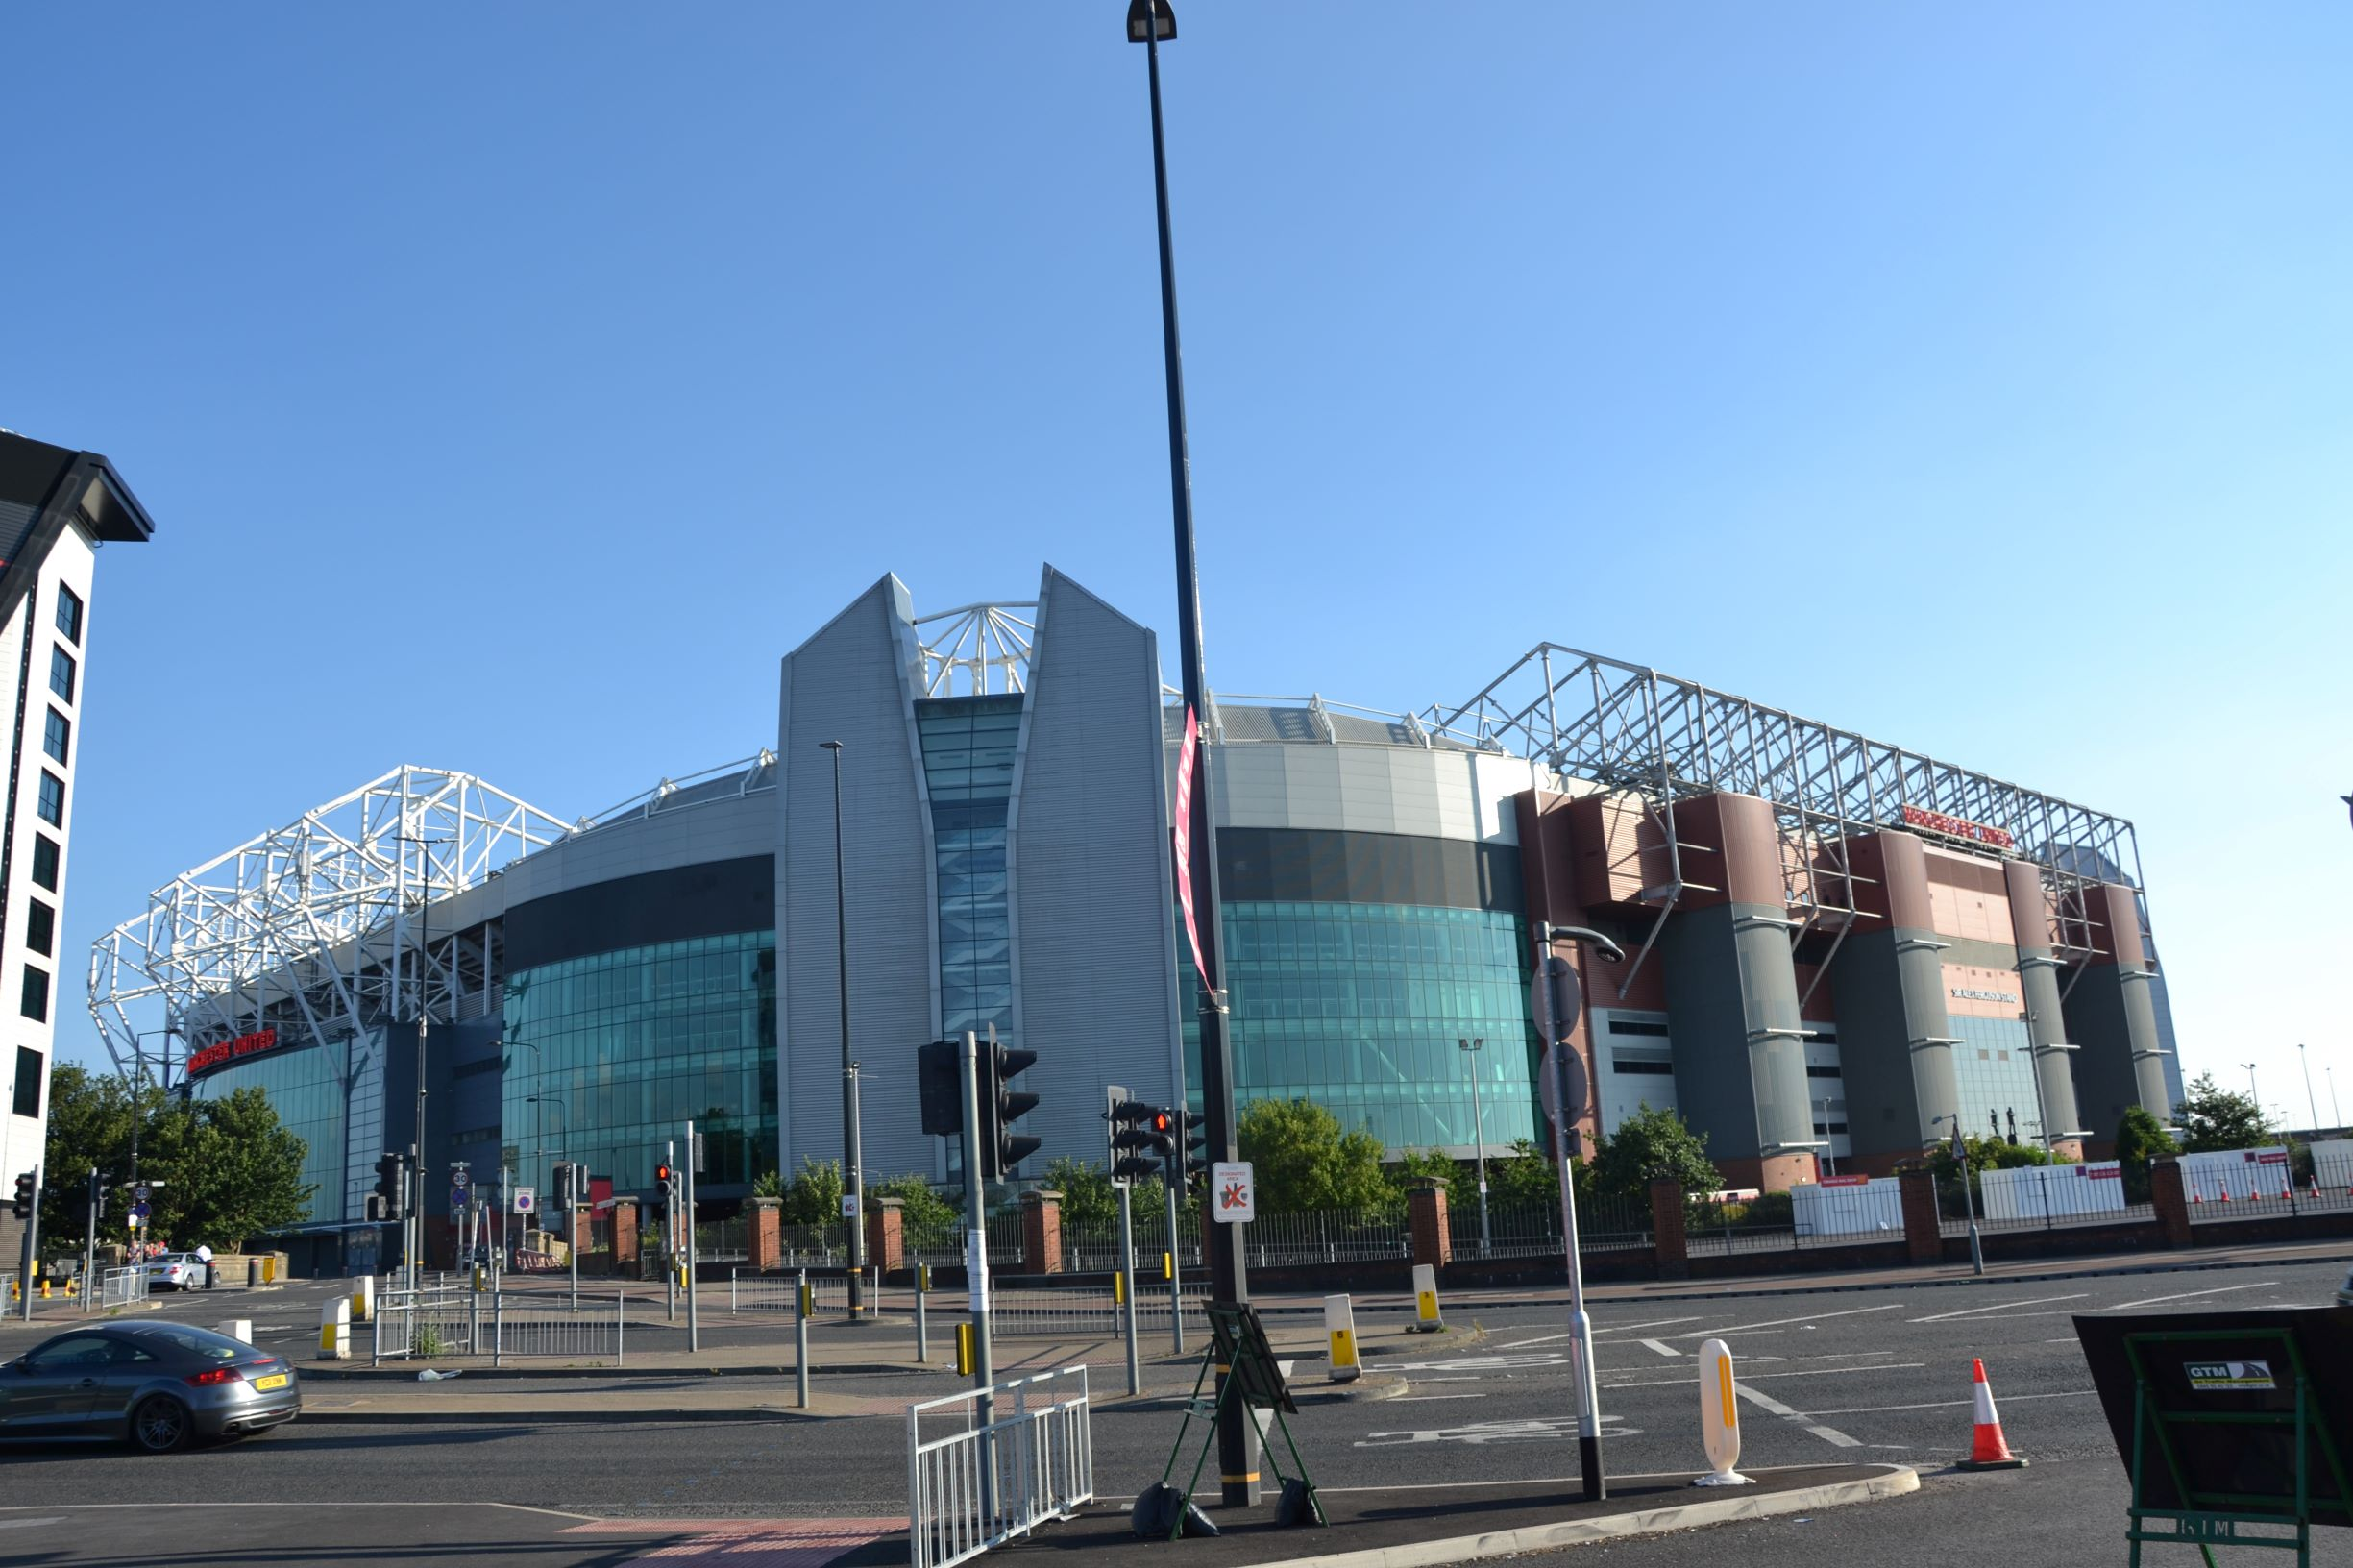 A Manchester United Stadion